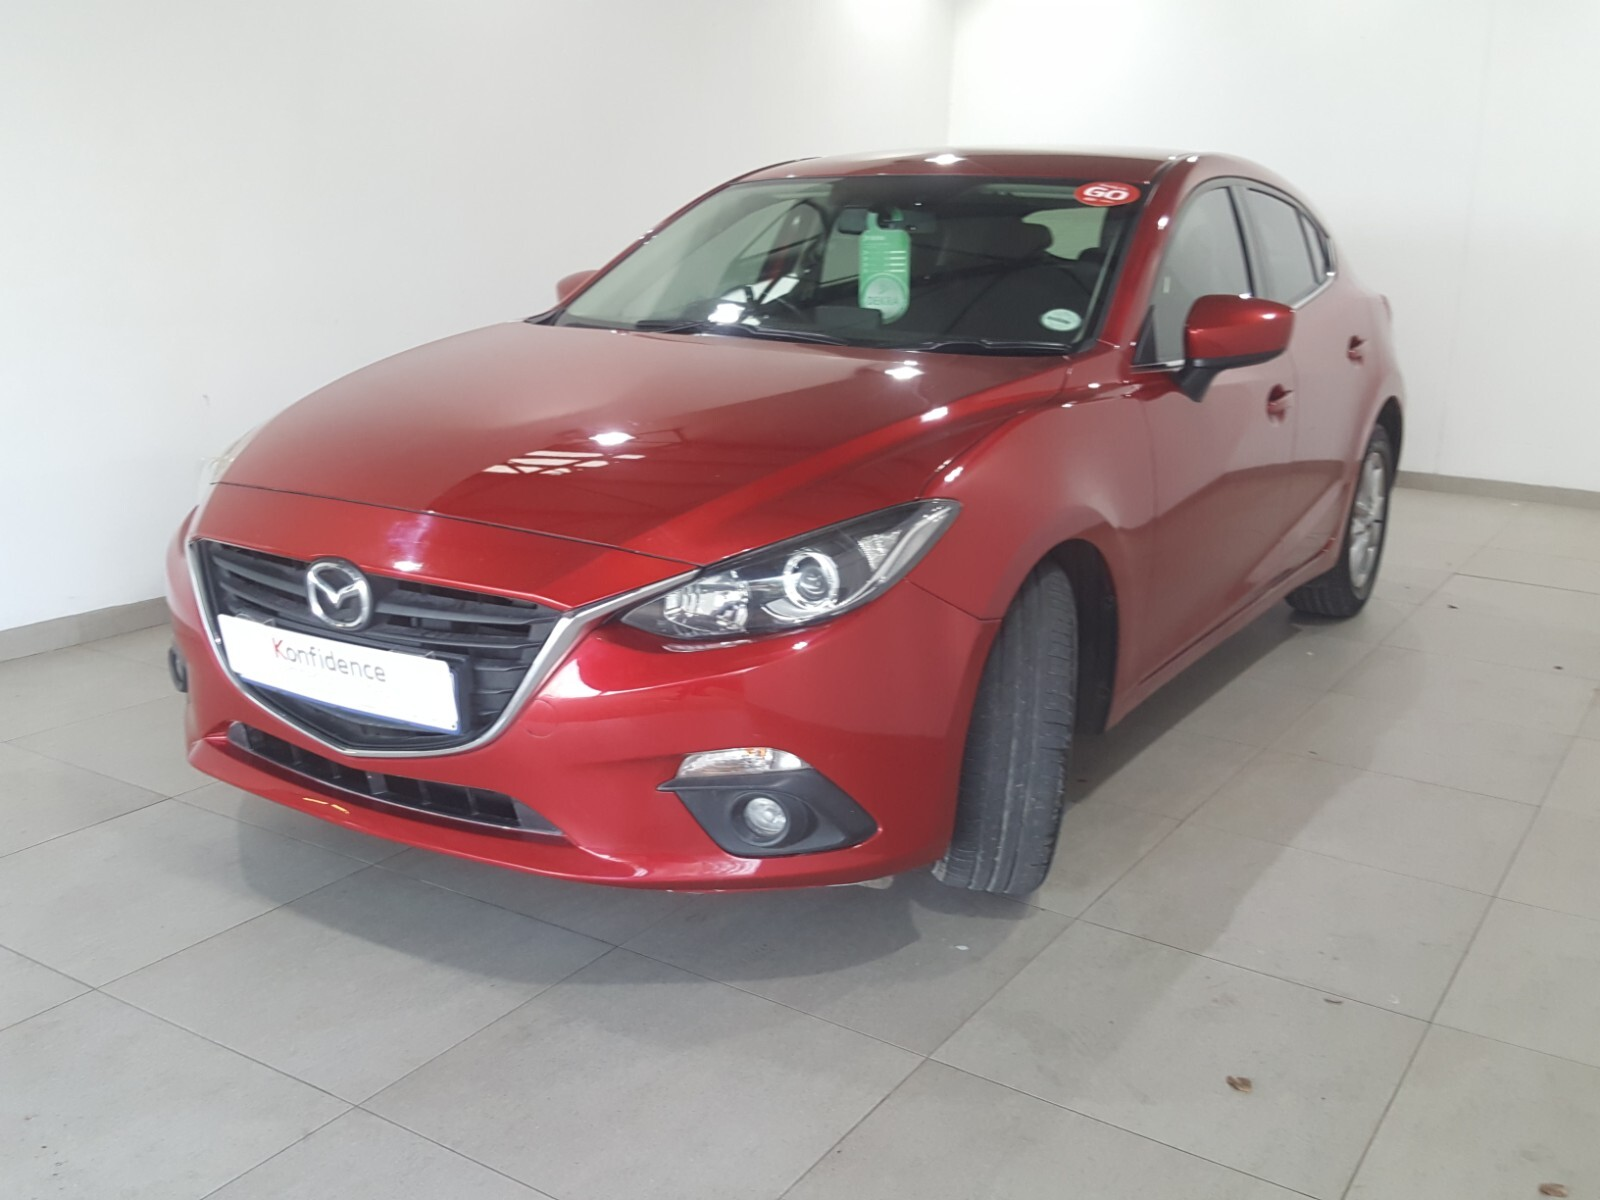 MAZDA 1.6 DYNAMIC 5DR A/T Roodepoort 2327025